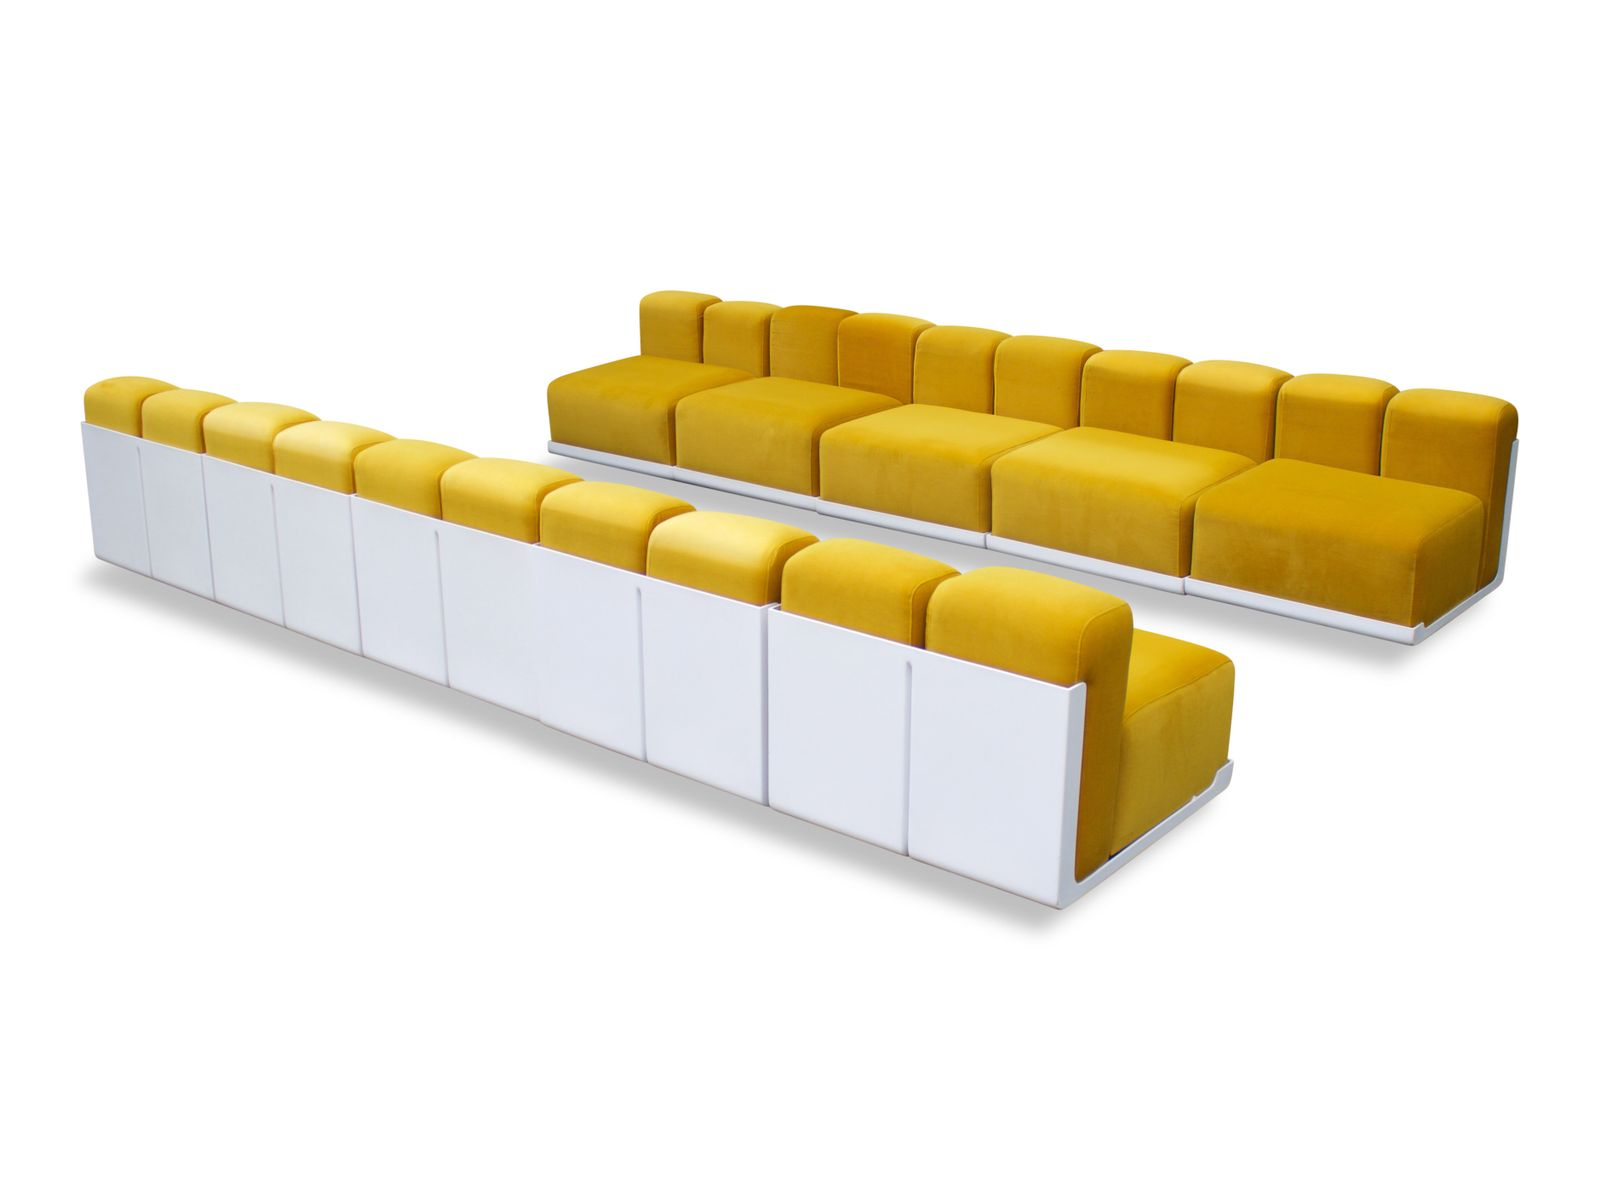 Raymond Sectional Sofa by Kazuhide Takahama for Gavina